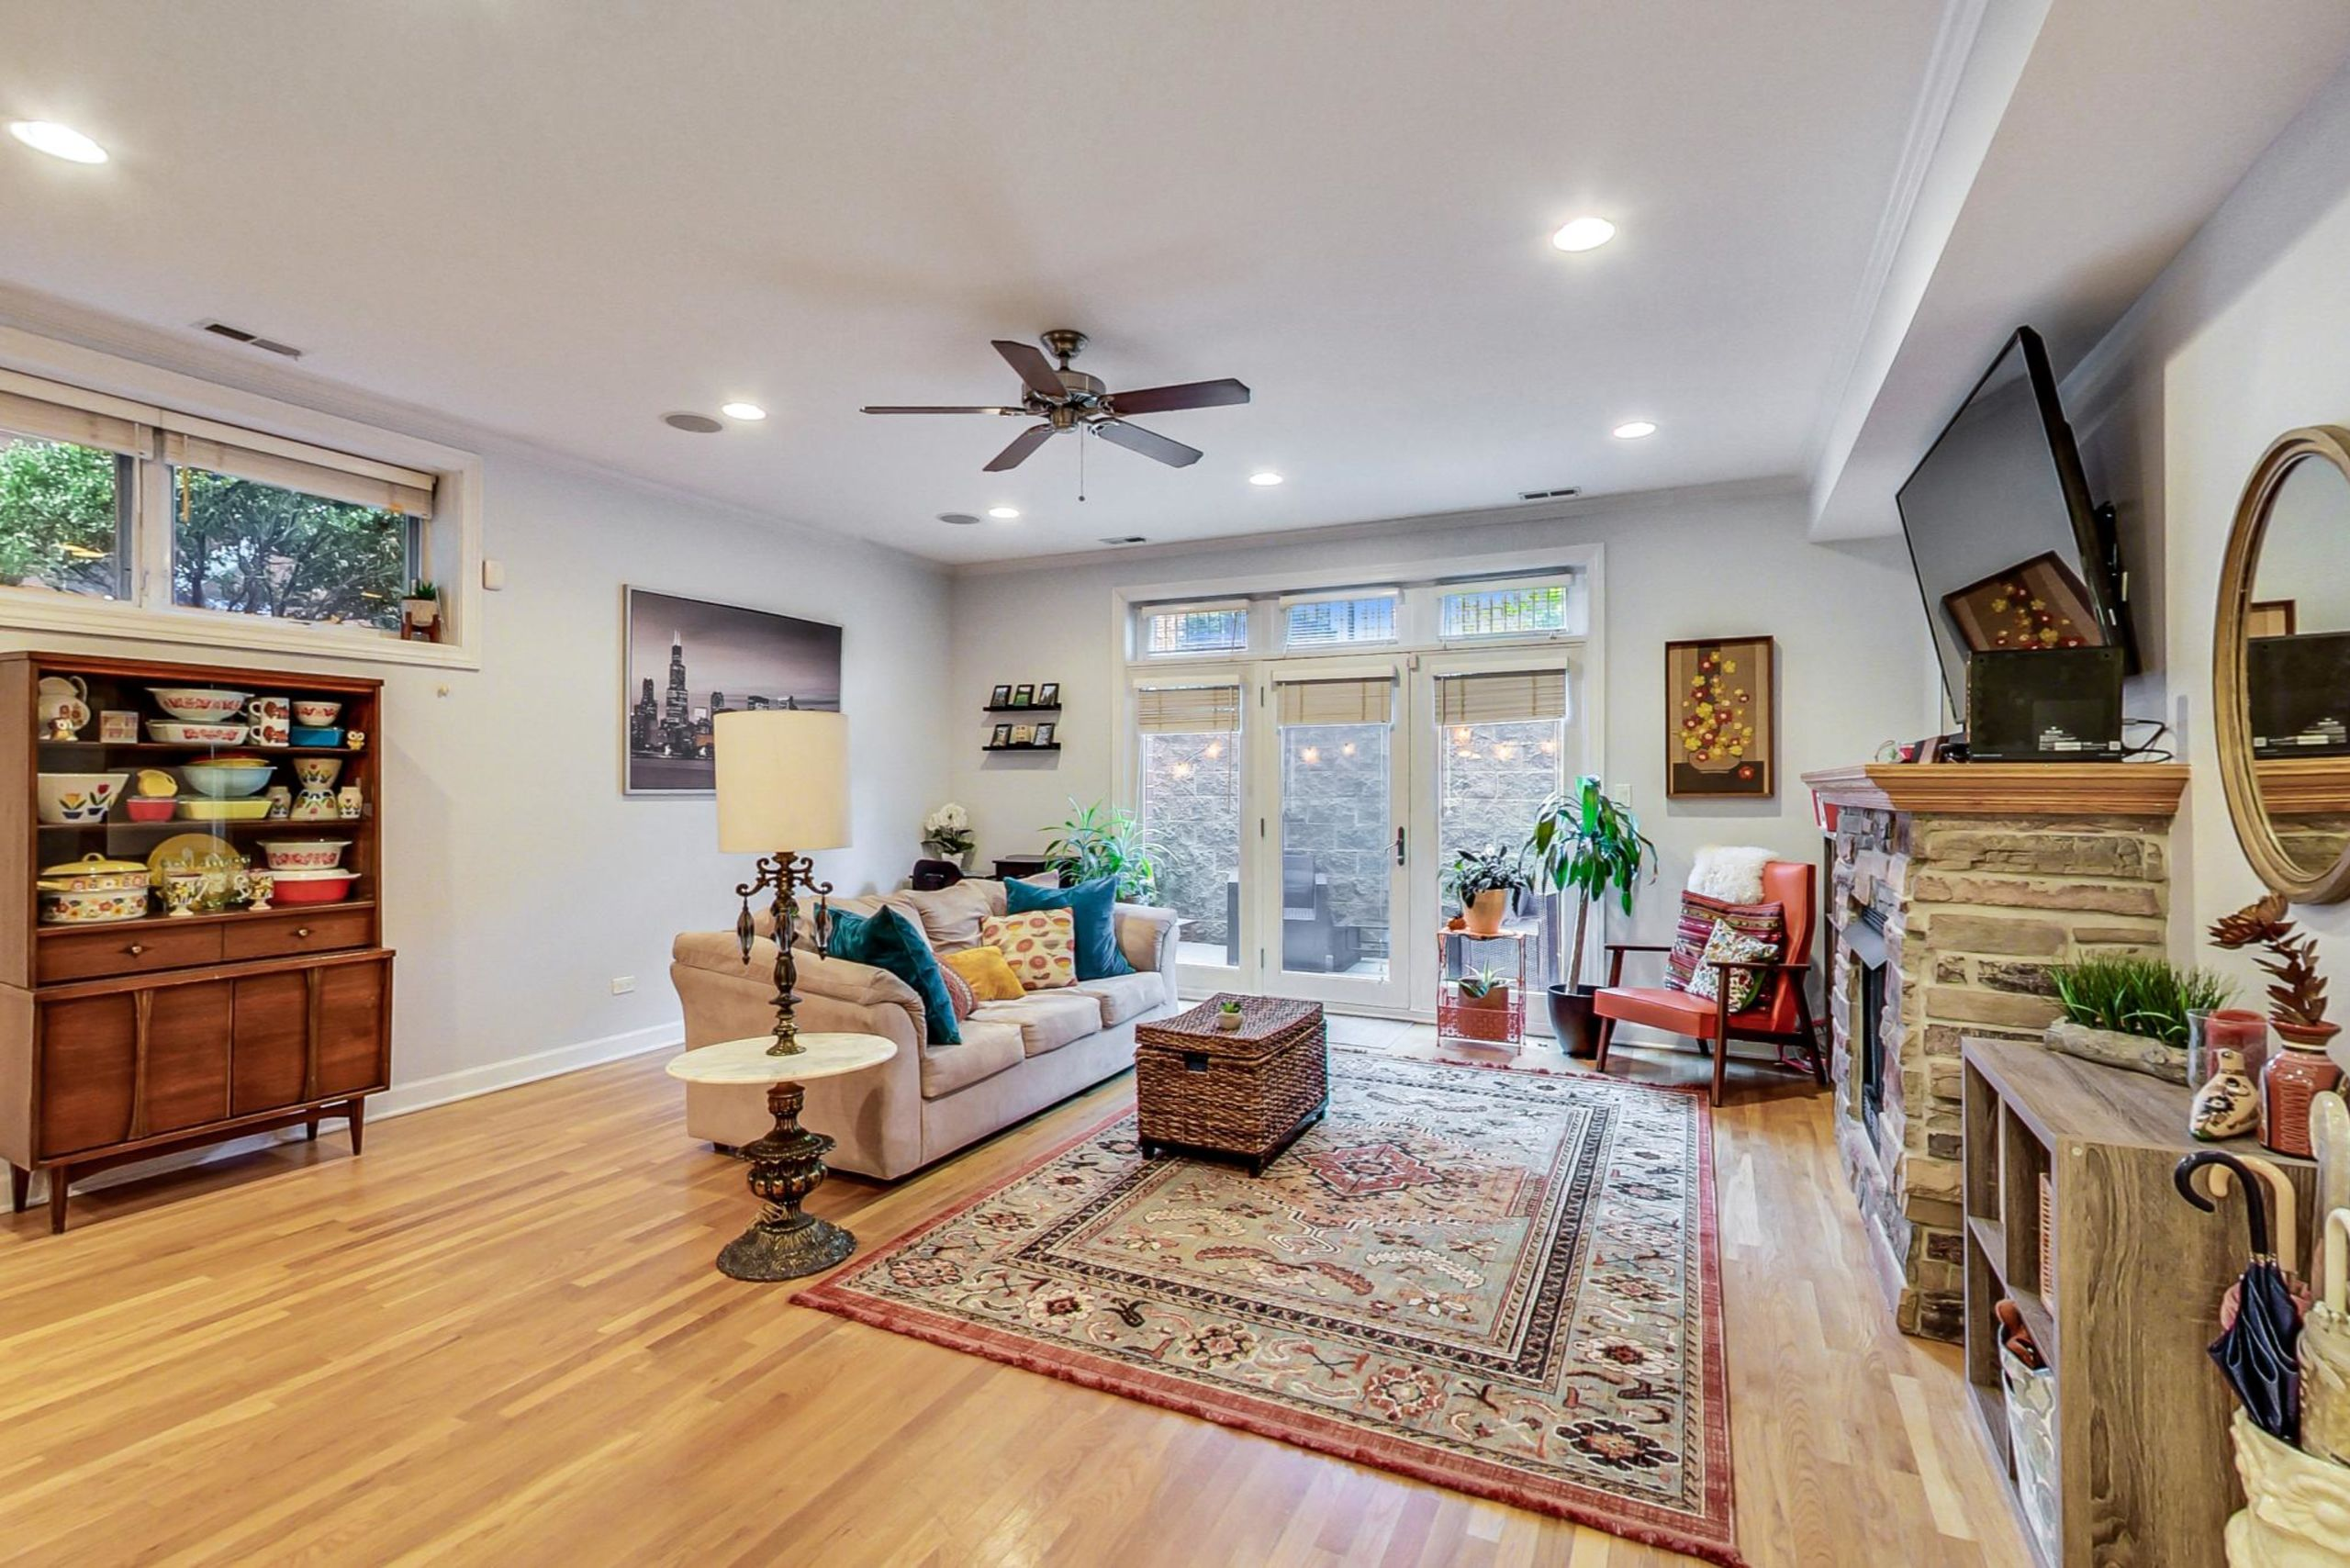 Click Photo For 3D Tour - 2457 W. Foster #1